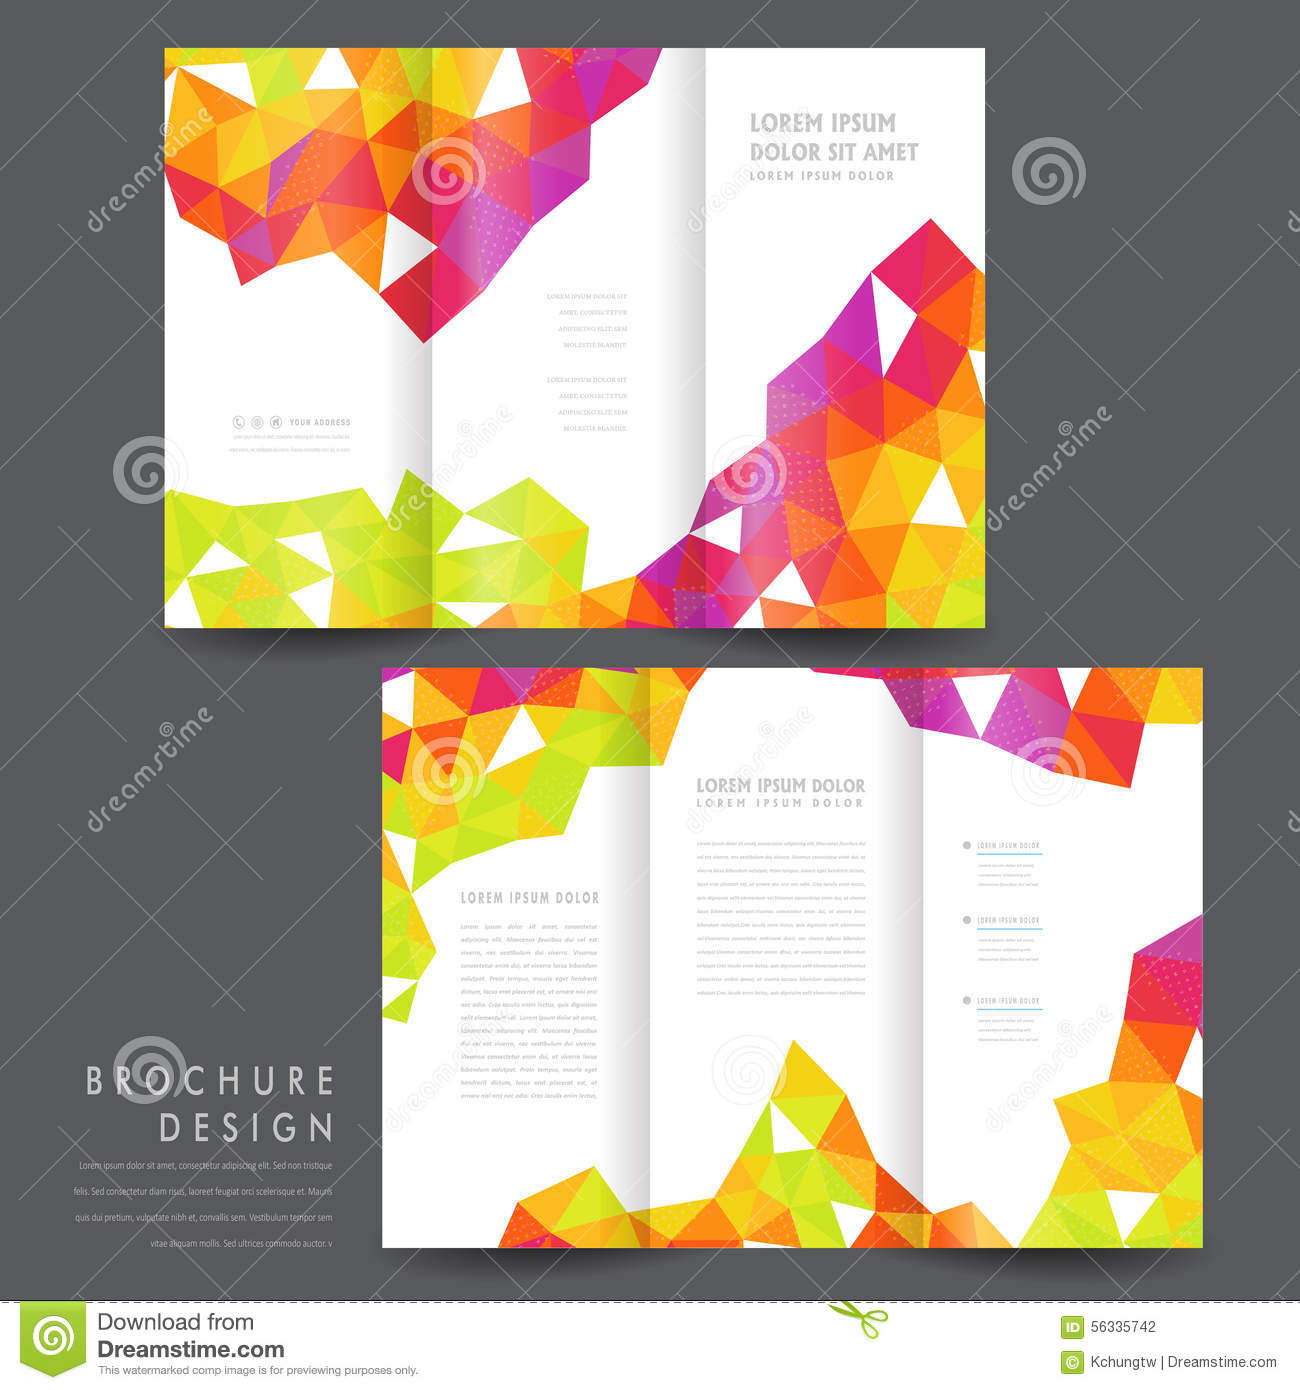 Attractive tri fold brochure template design stock vector for Colorful brochure templates